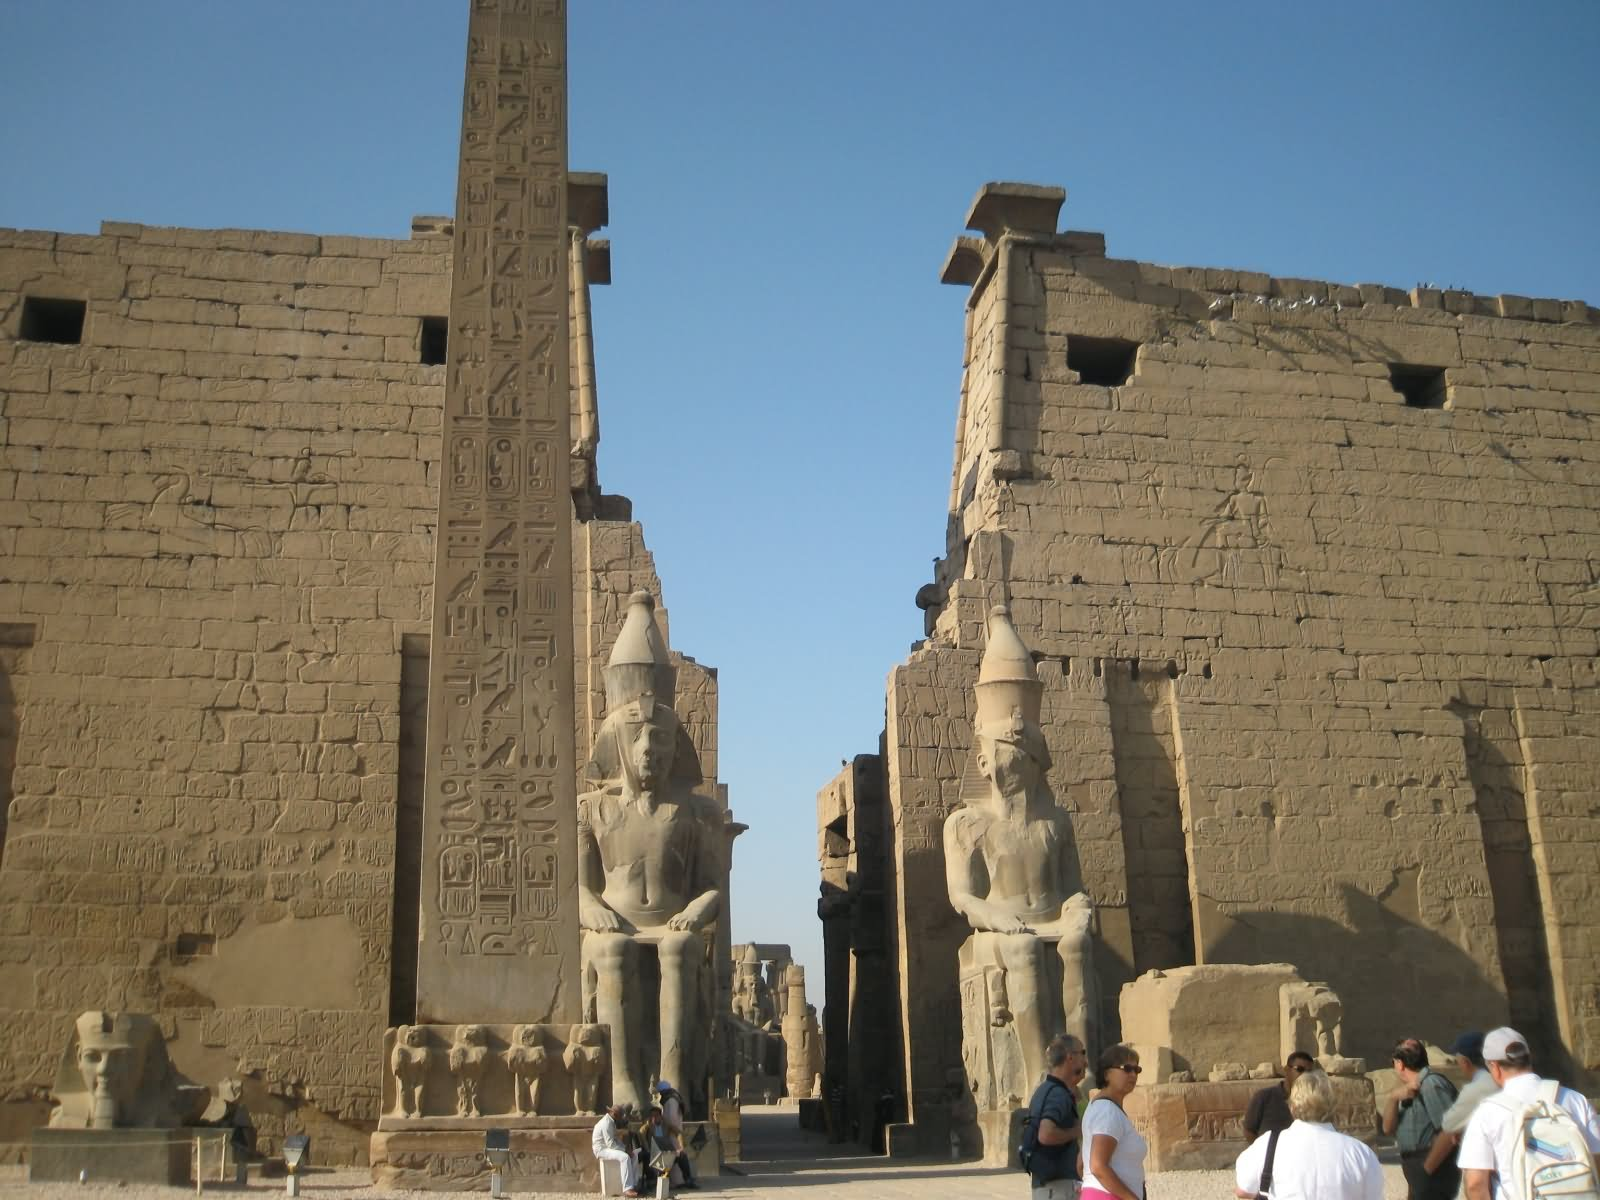 luxor temple Luxor temple is a large ancient egyptian temple complex located on the east bank of the nile river in the city today known as luxor (ancient thebes) and was constructed approximately 1400 bcein the egyptian language it is known as ipet resyt, the southern sanctuaryin luxor there are several great temples on the east and west banks four of the major mortuary temples visited by early.